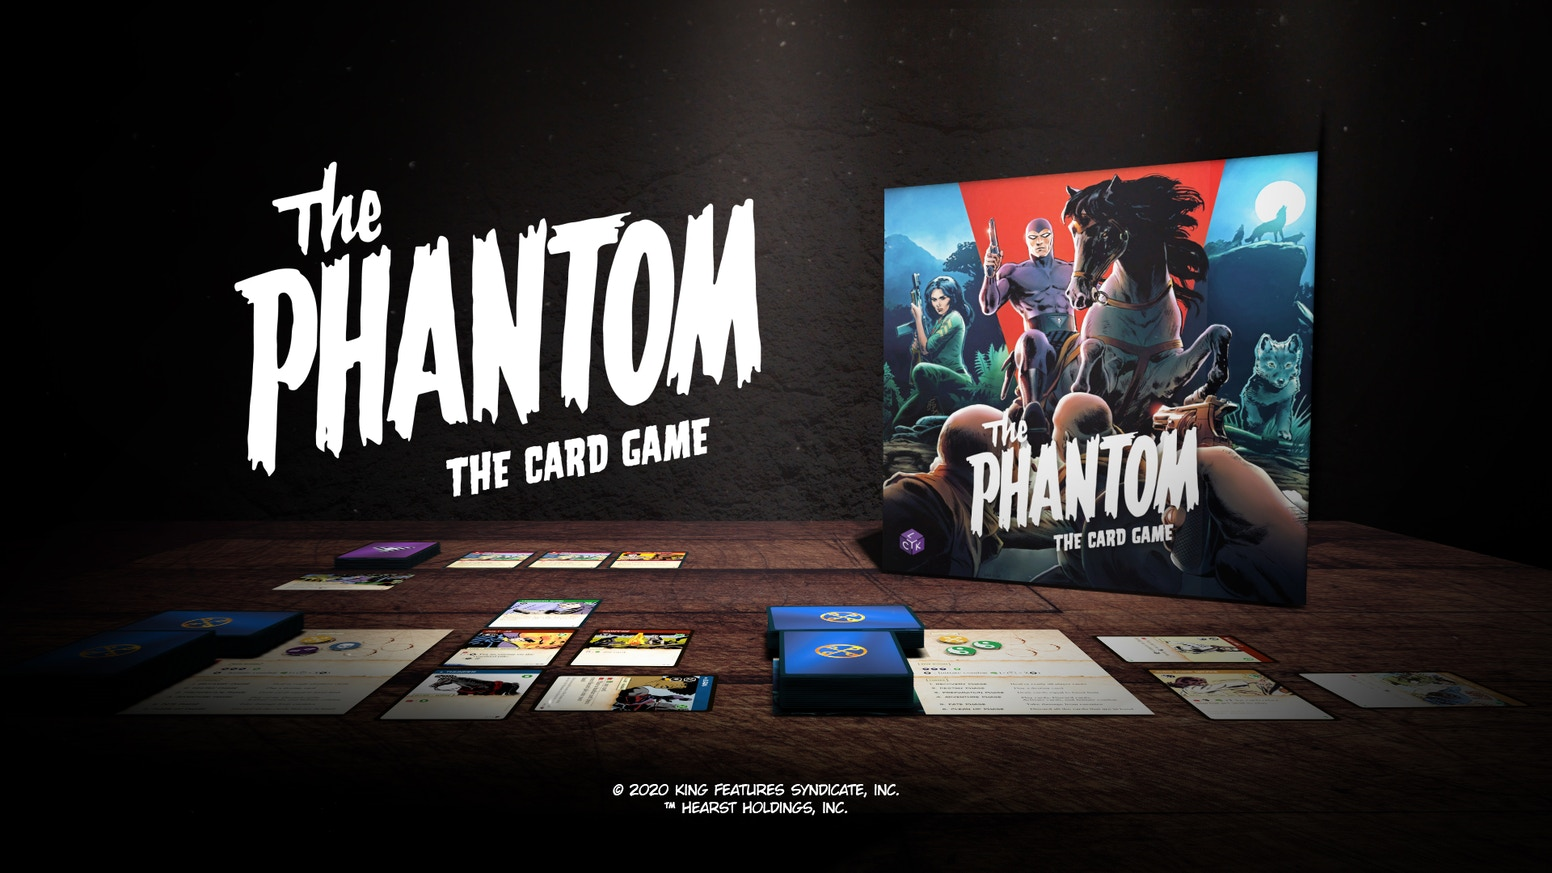 A cooperative card game that lets you relive adventures set in the world of the Phantom